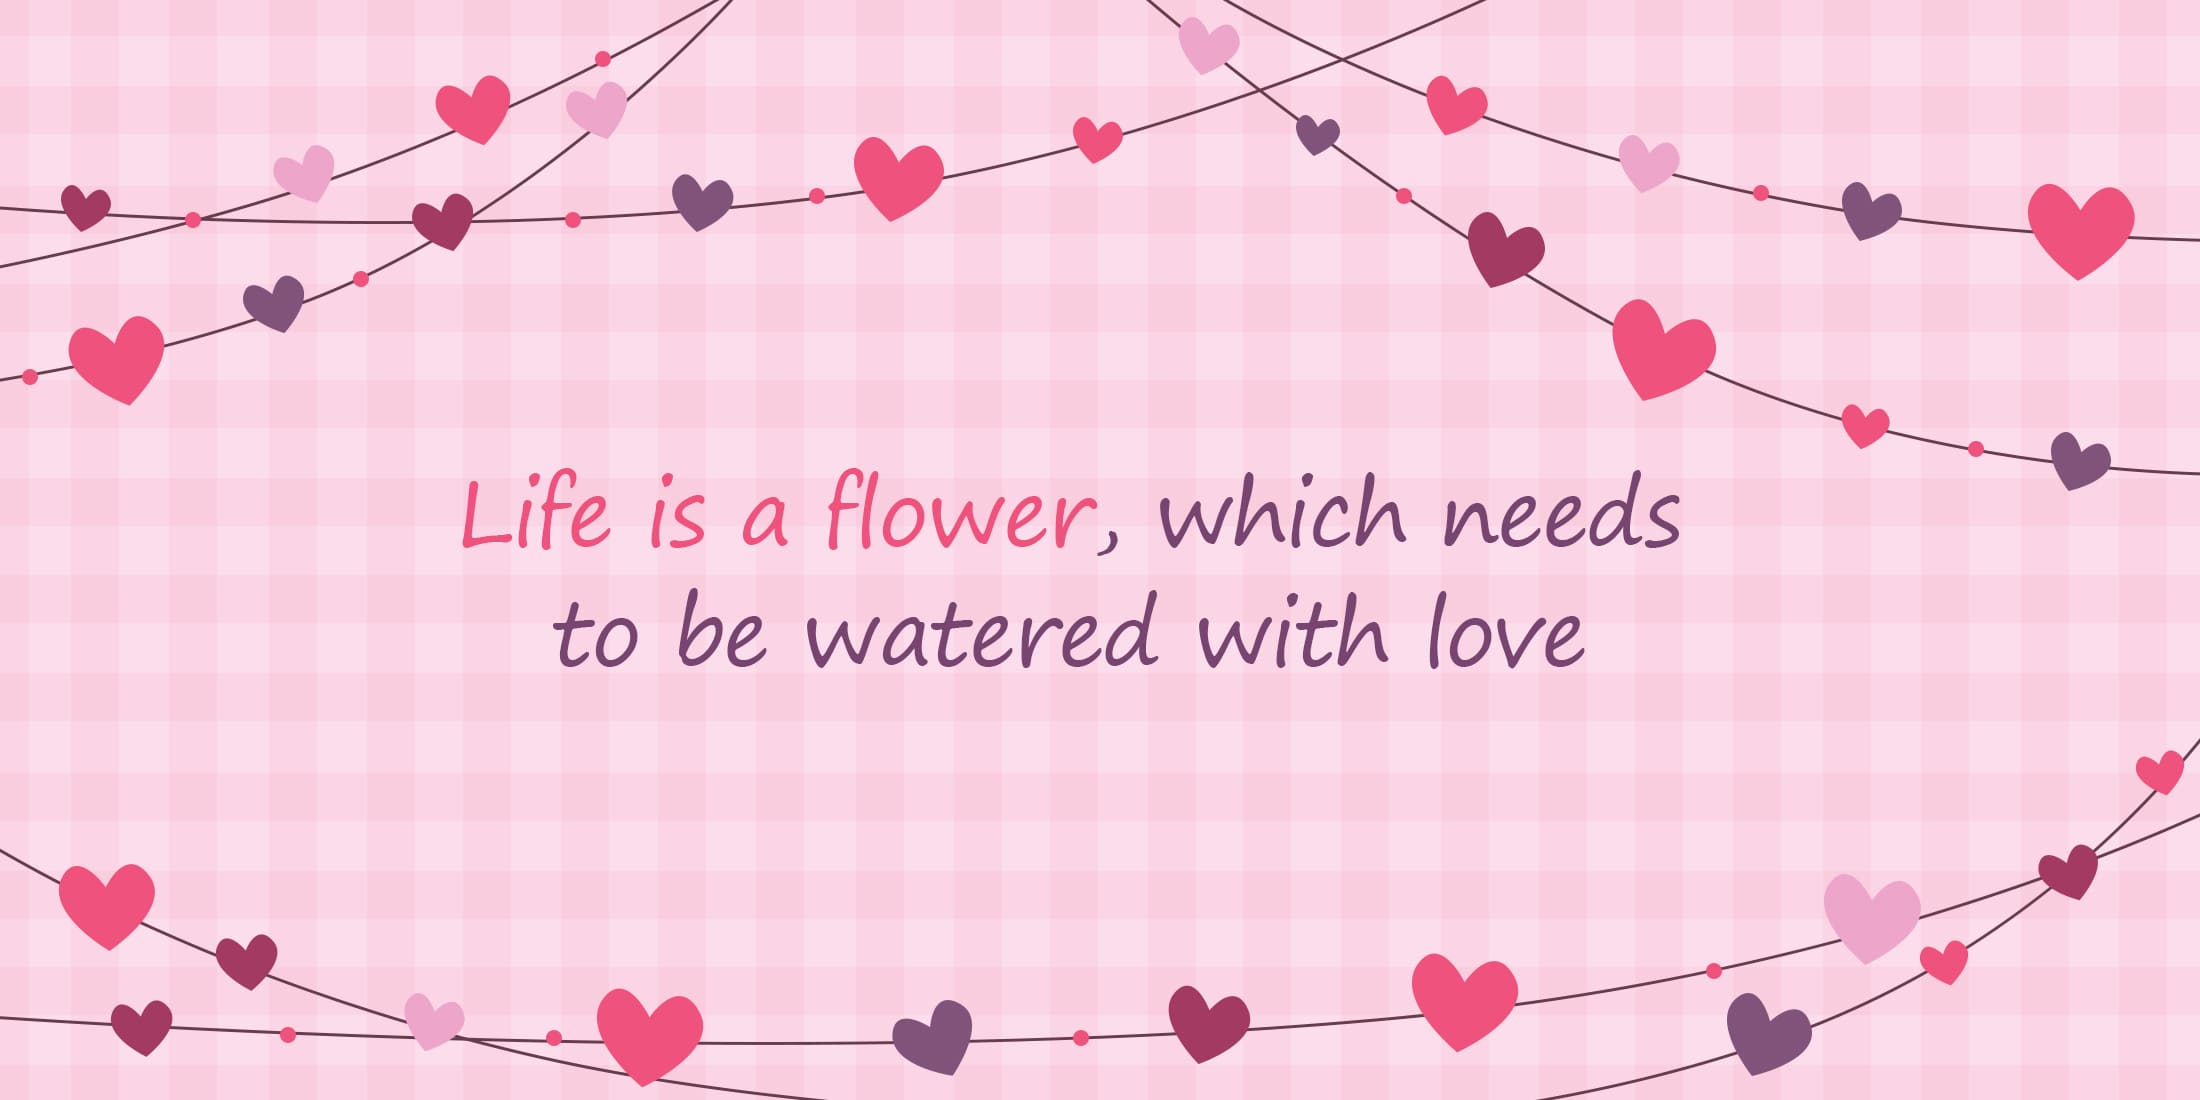 Life is a flower, which needs to be watered with love.